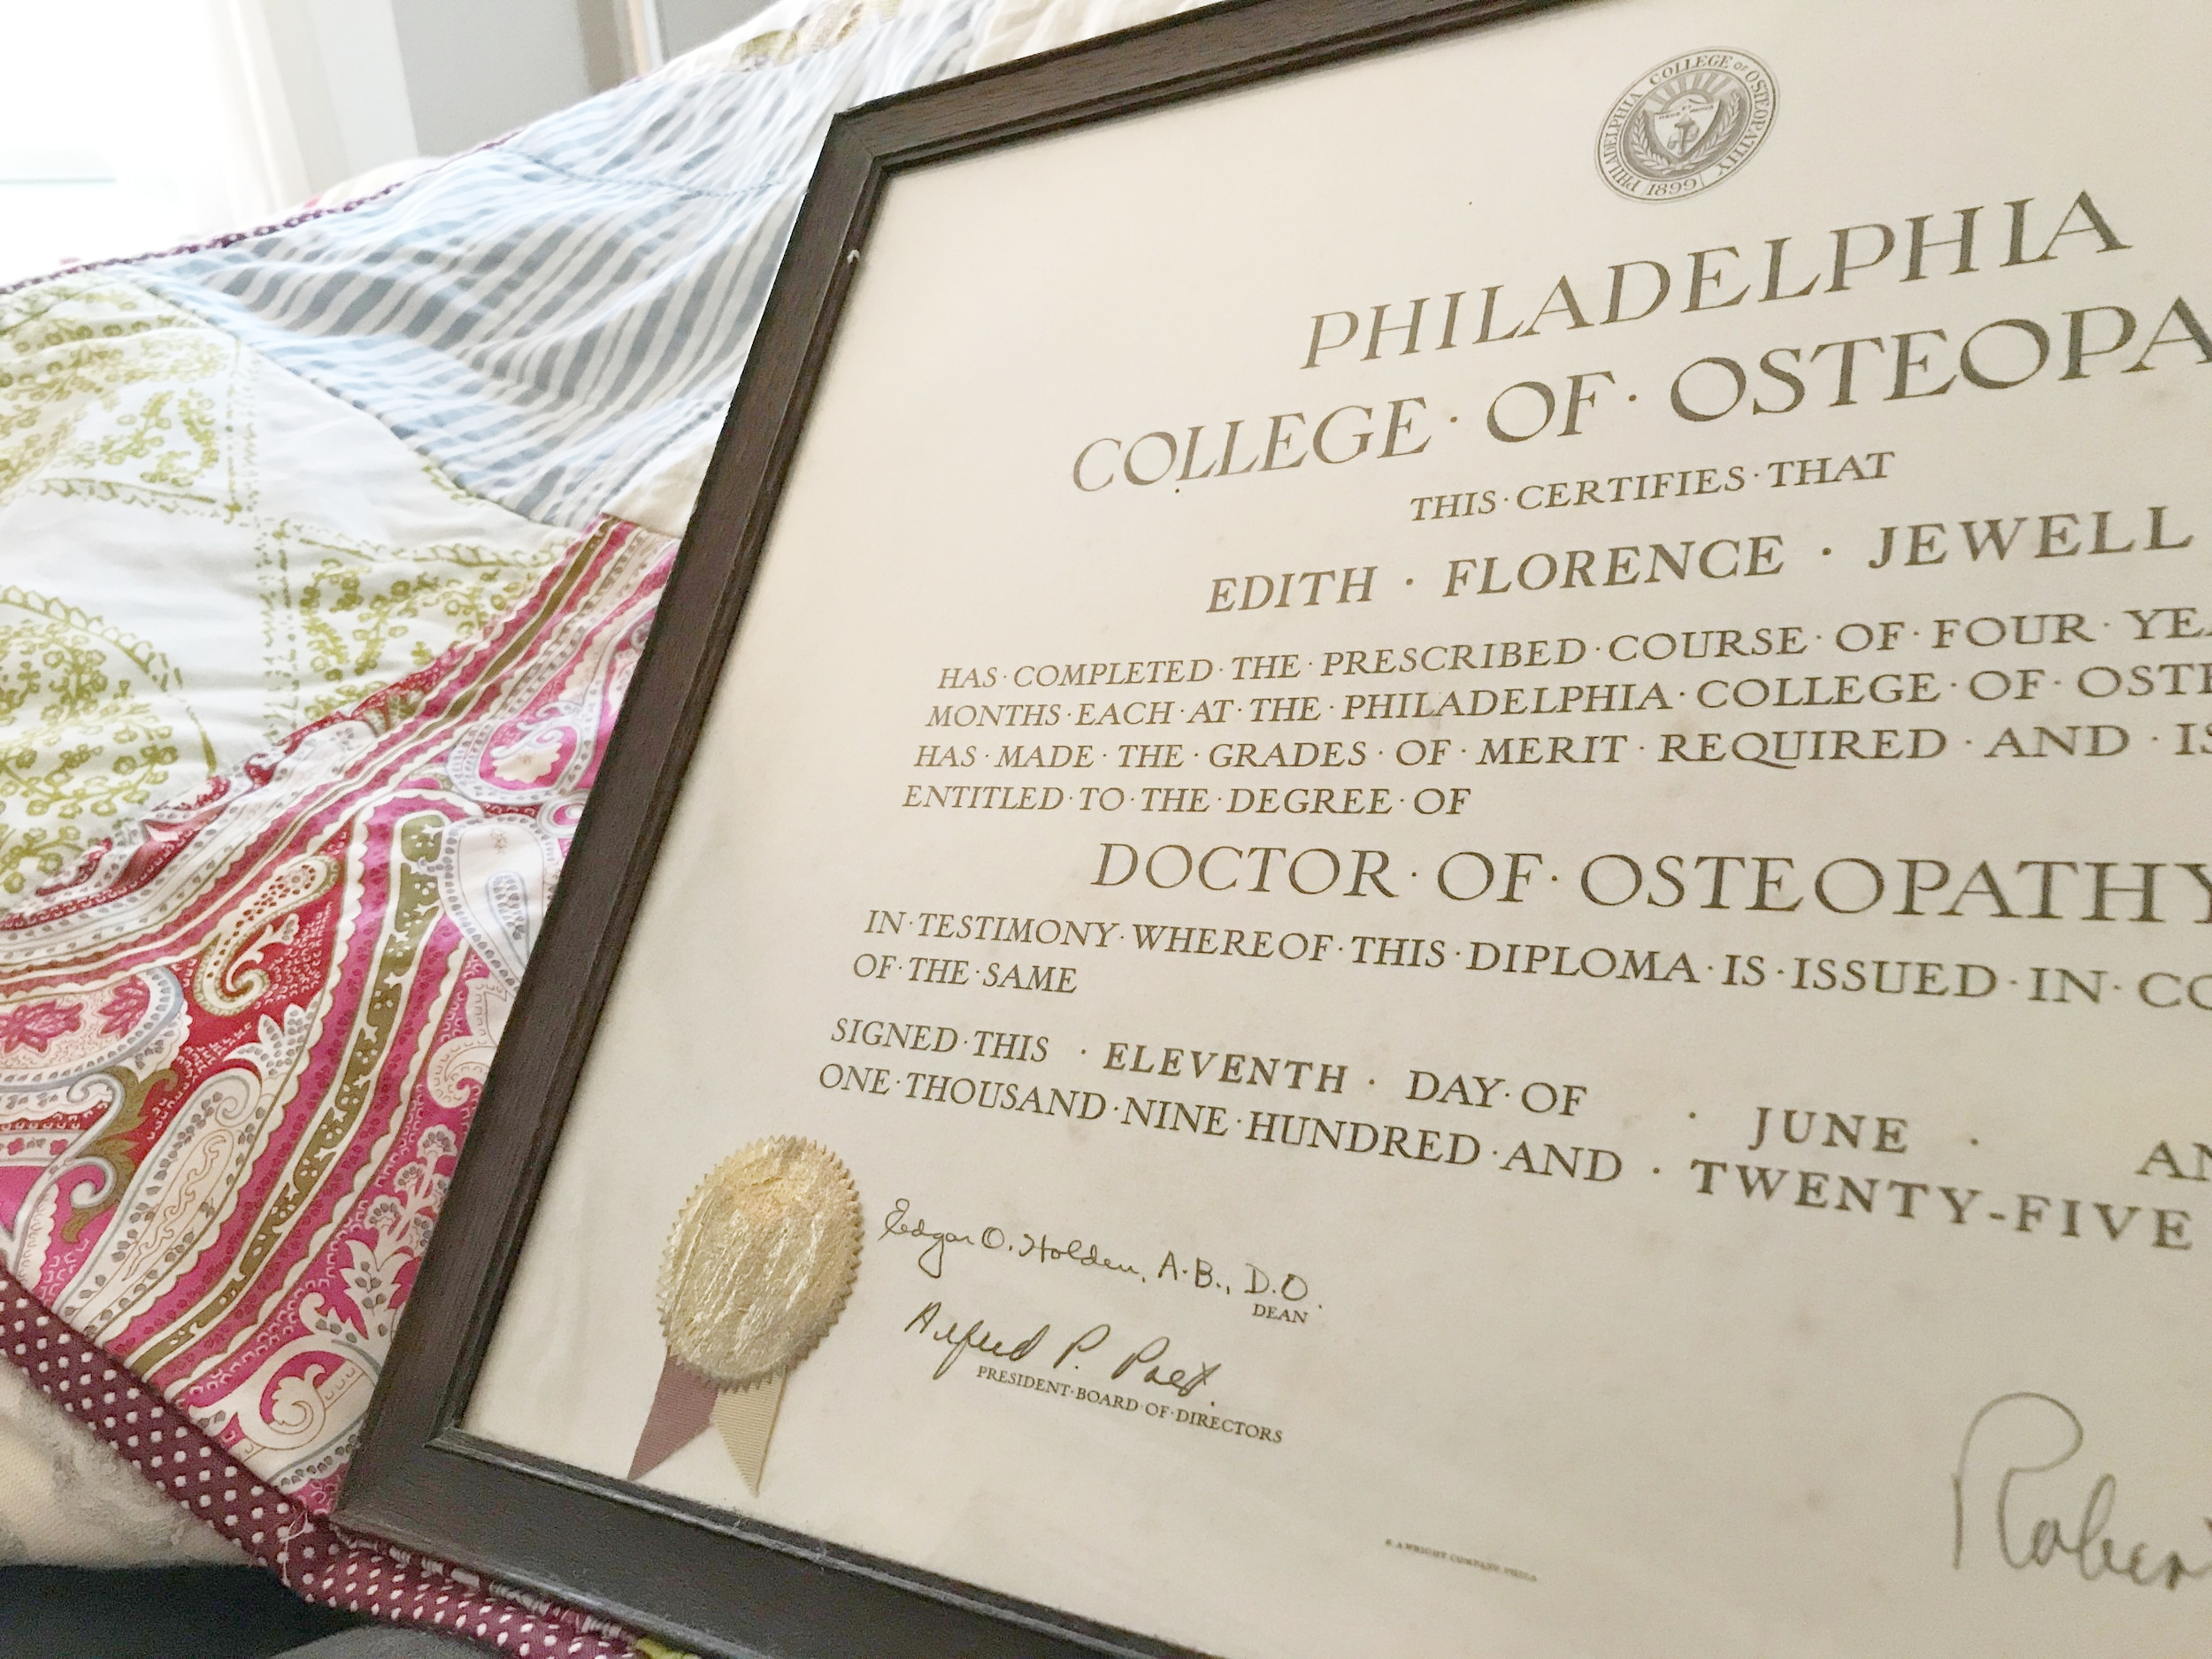 June 11th, 1925 degree from the medical school that didn't reply to my grandmother's application, so she took the train to the school and enrolled in person.